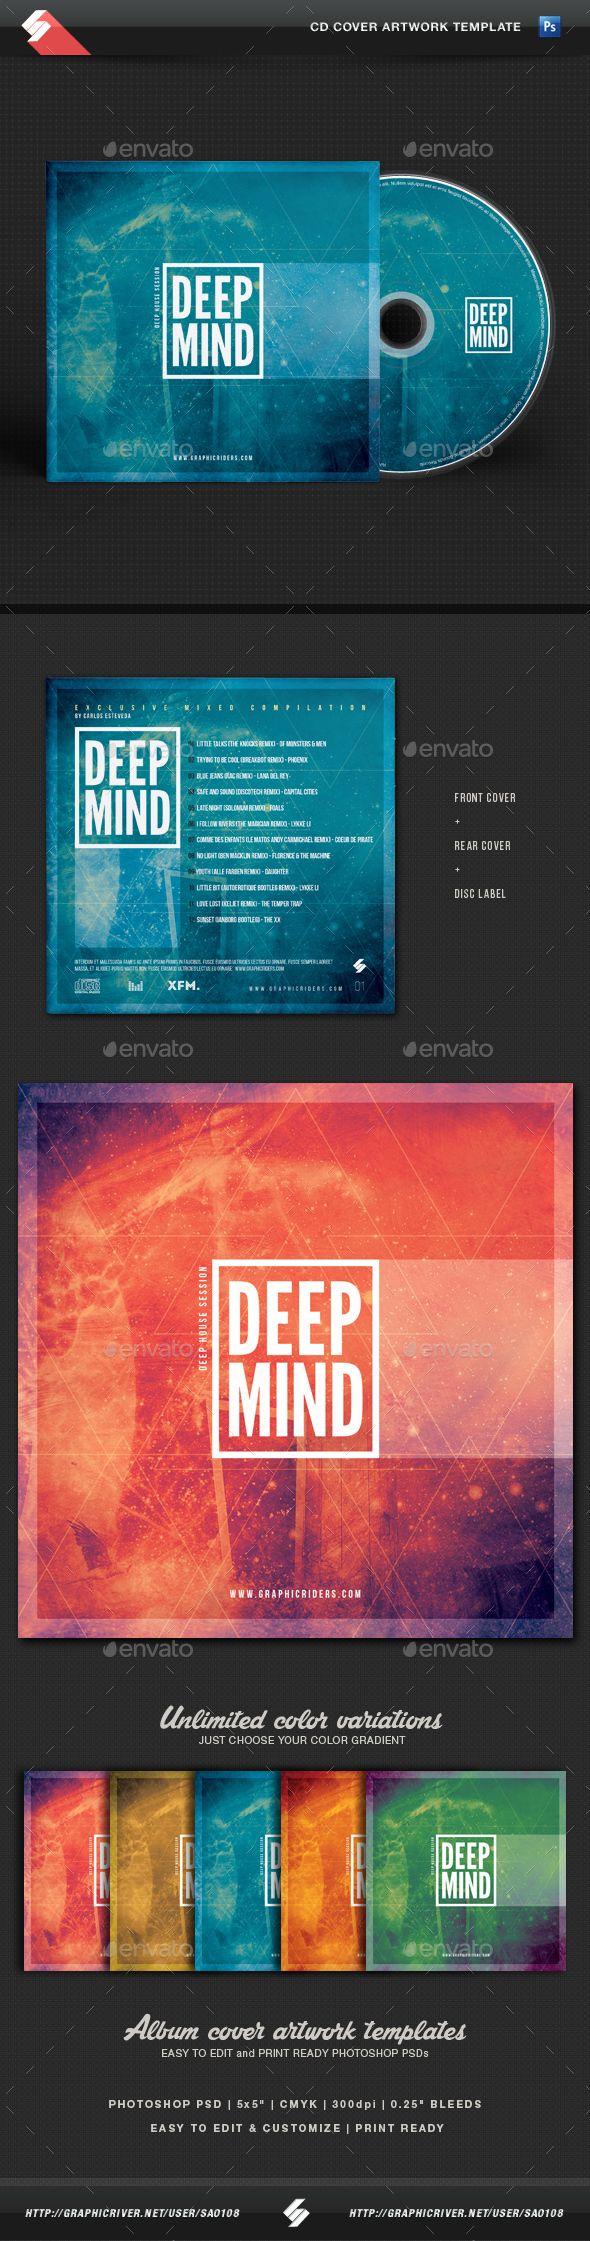 Deep Mind  CD Cover Artwork Template — Photoshop PSD #dj #multicolor • Available here → https://graphicriver.net/item/deep-mind-cd-cover-artwork-template/14466413?ref=pxcr